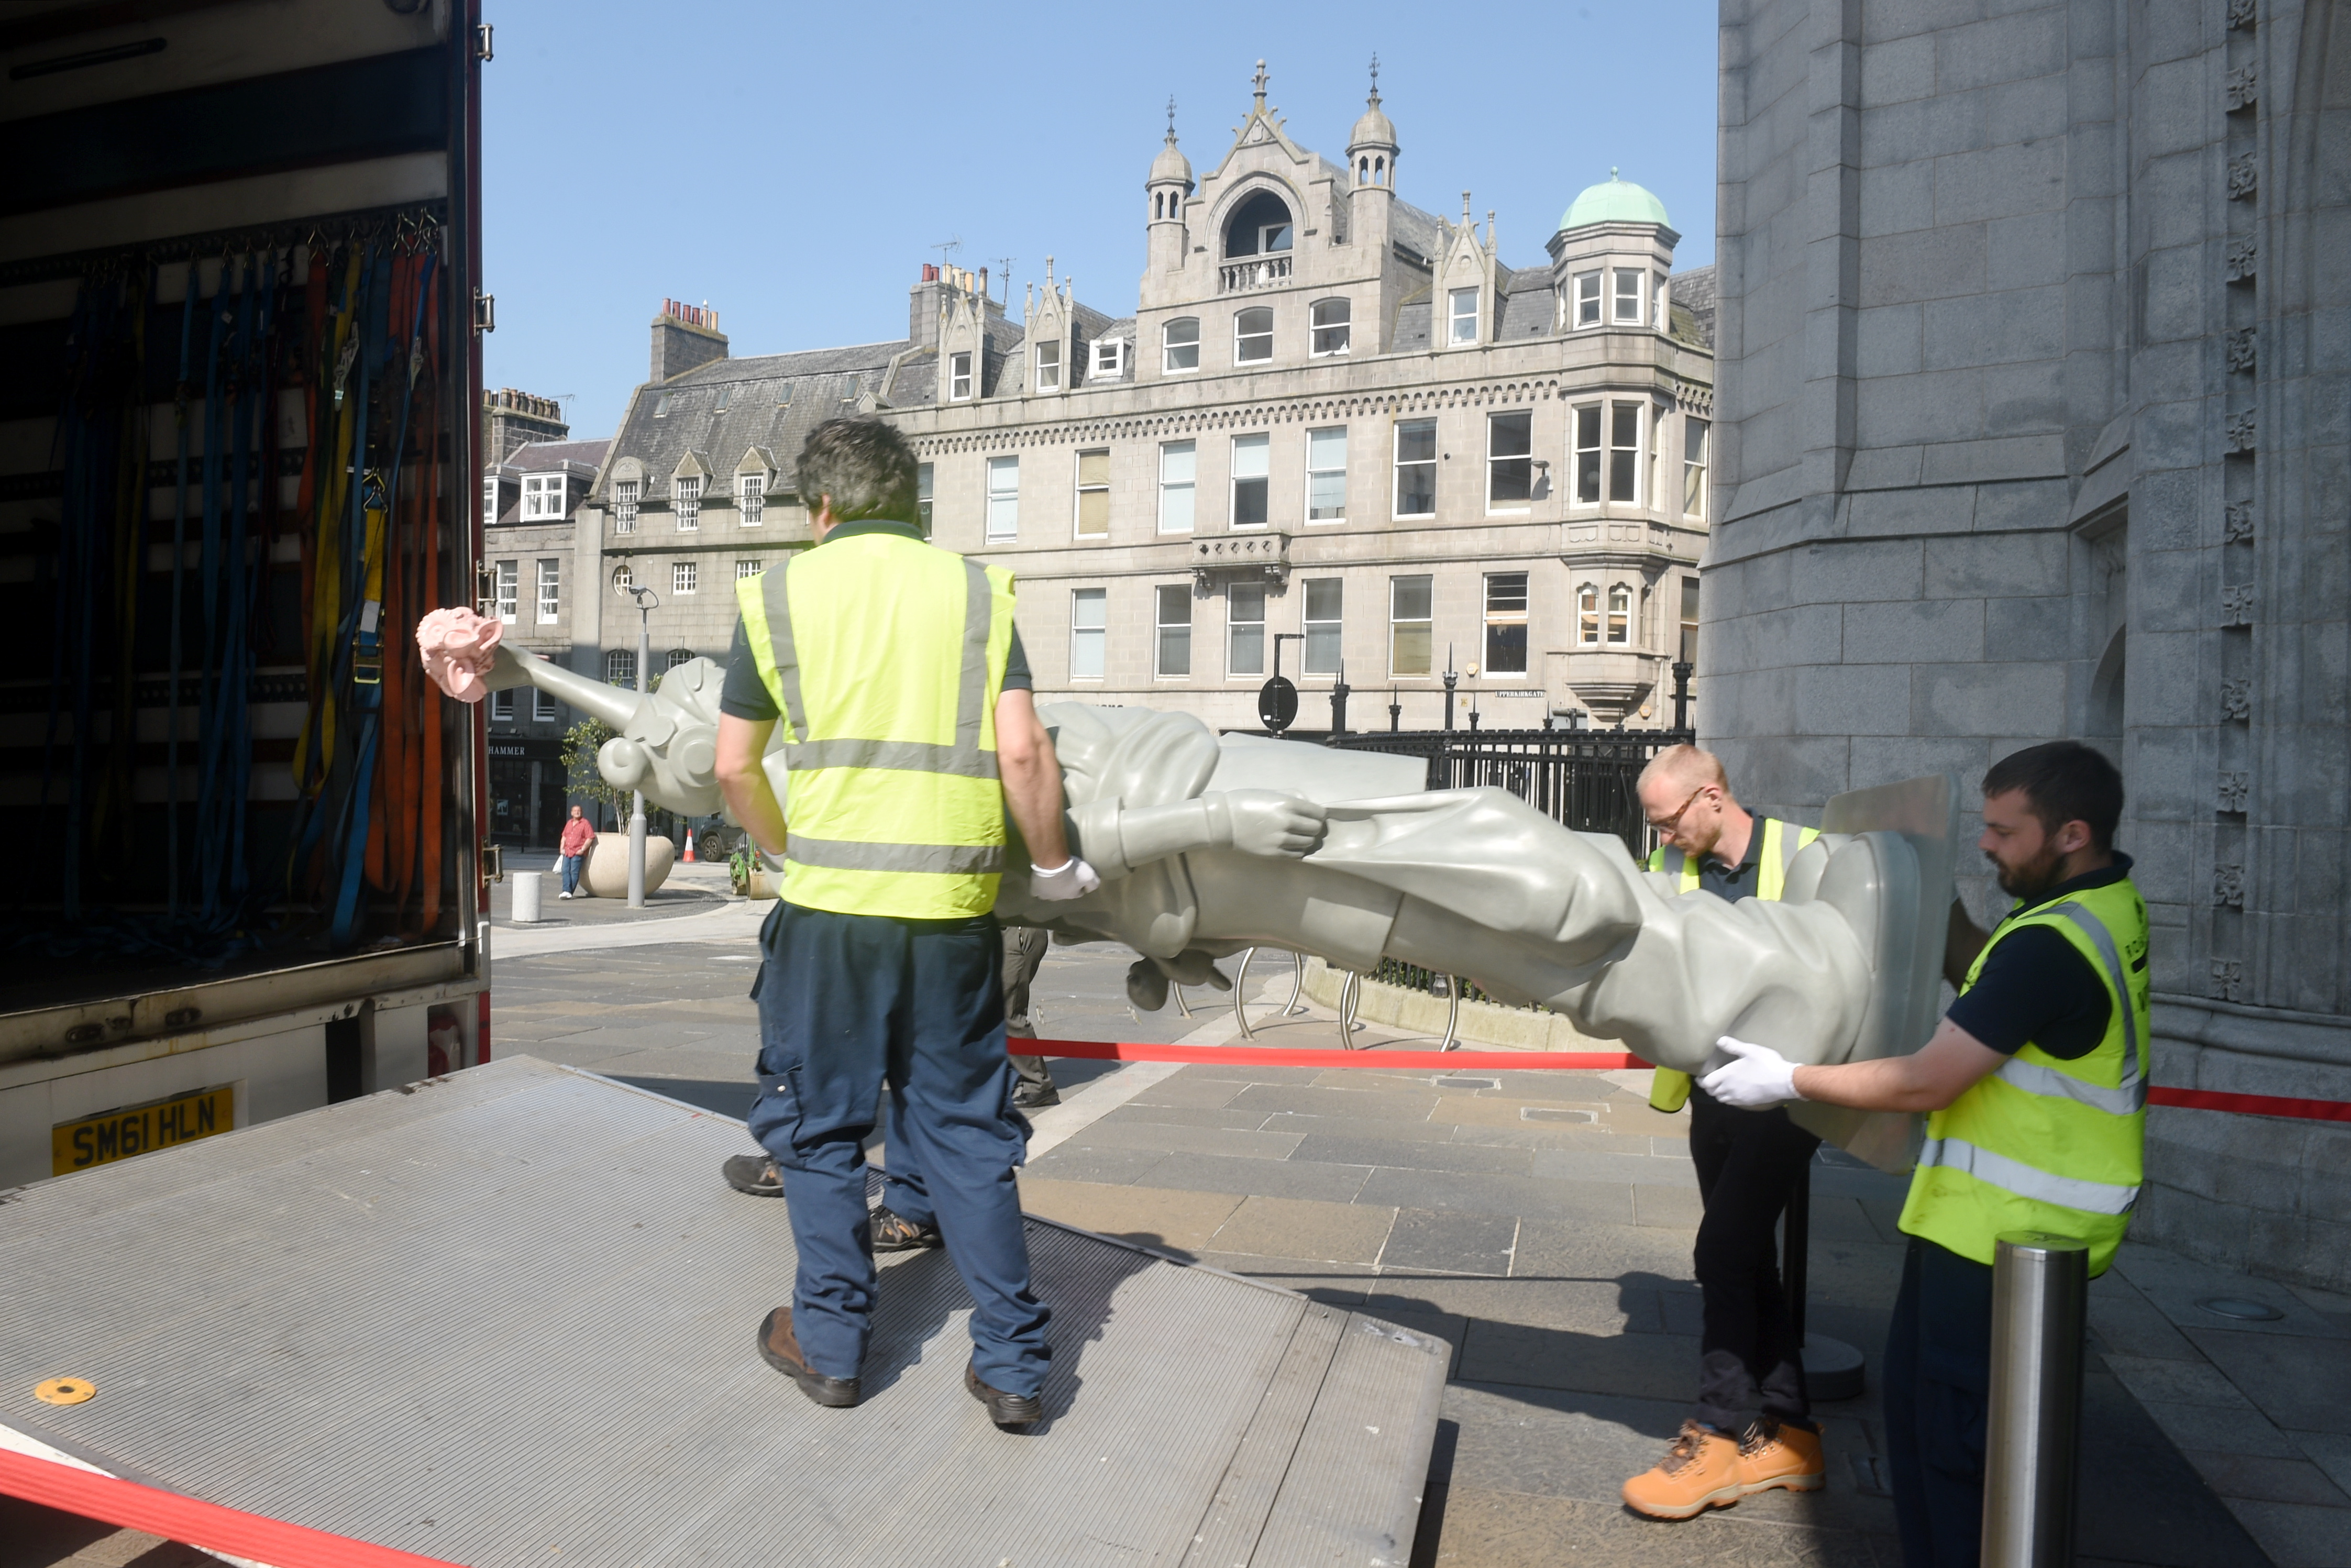 Pictured is artwork being loaded into a van at Marischal College, Broad Street, Aberdeen. The artwork is to be taken to the Aberdeen Art Gallery. Picture by DARRELL BENNS   26/07/2019